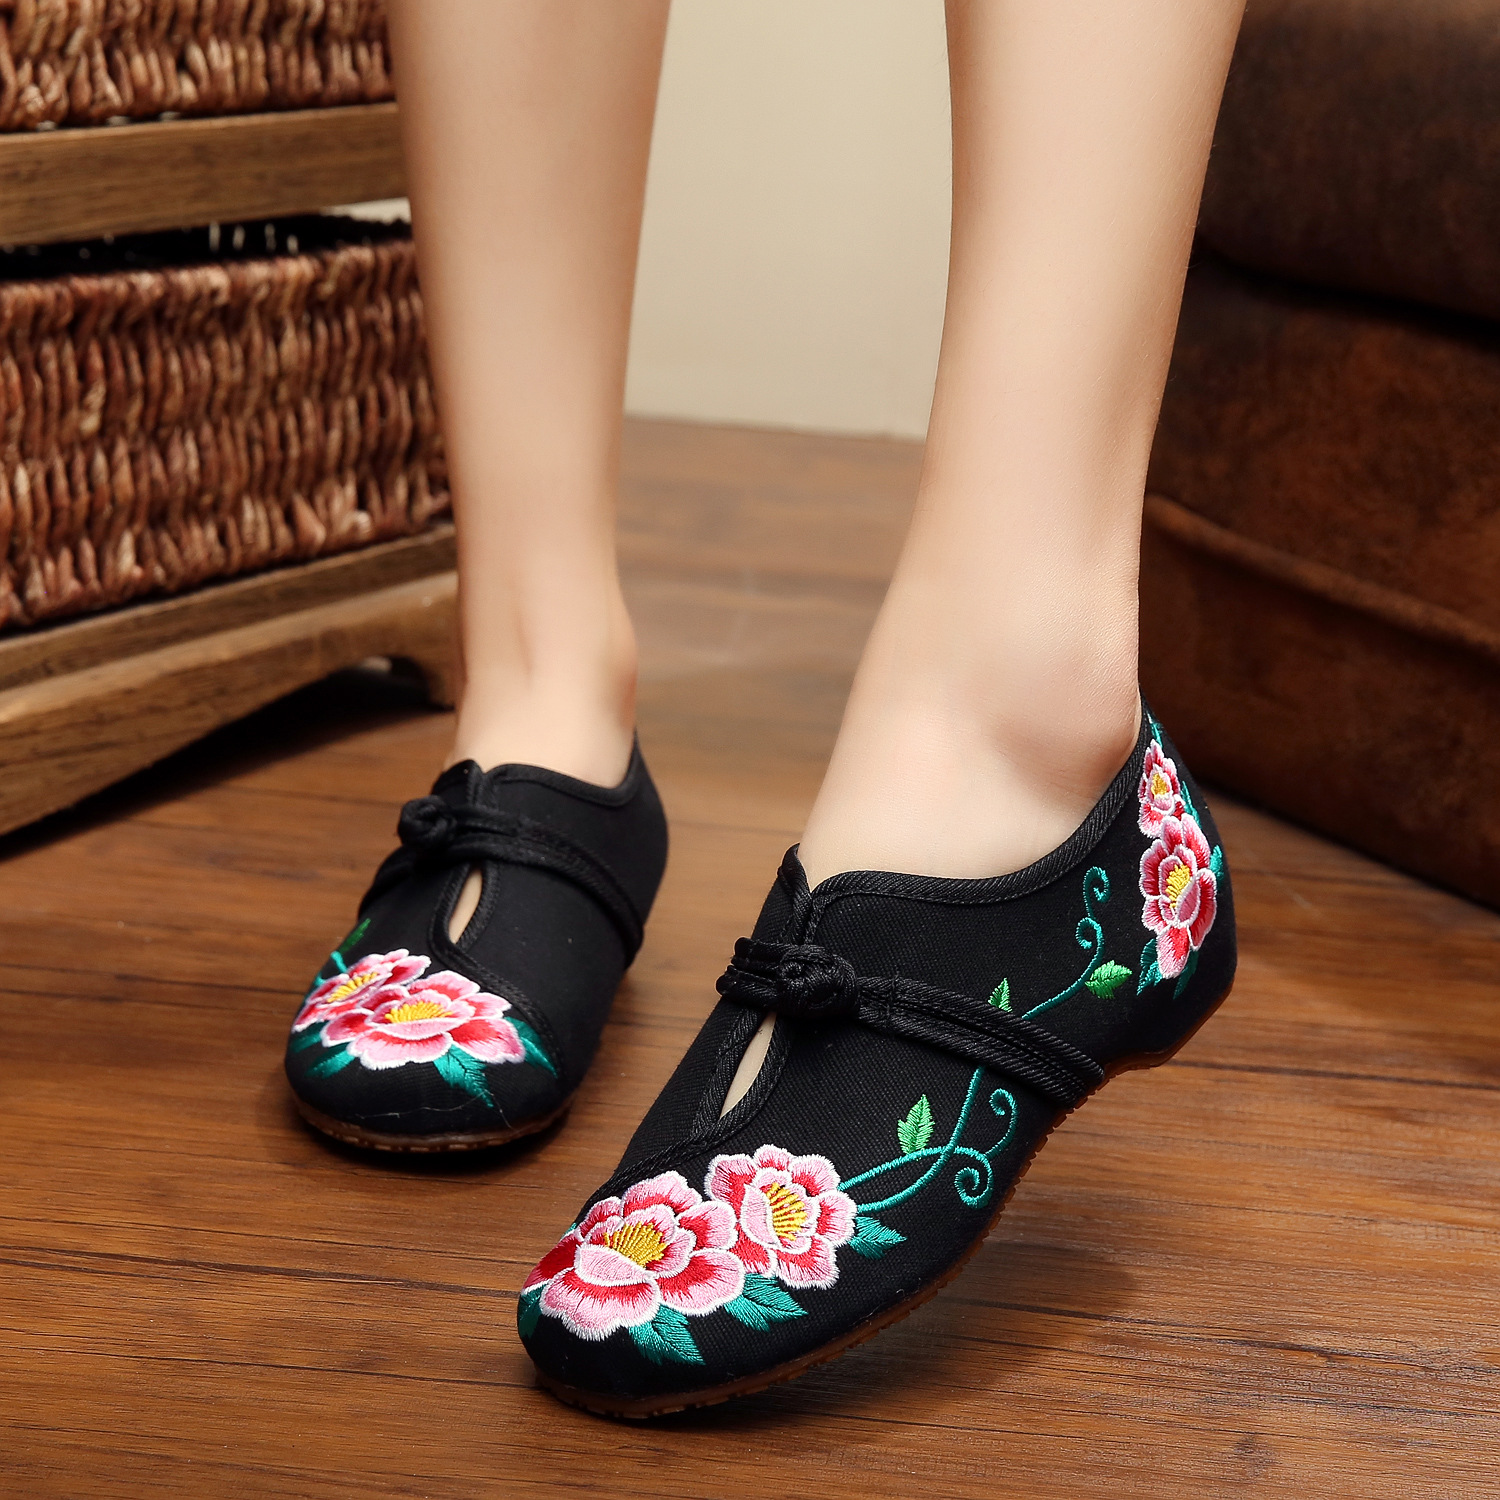 New autumn high quality flower embroidery ladies flats shoes fashion casual oxford shoes for women canvas shoes<br><br>Aliexpress